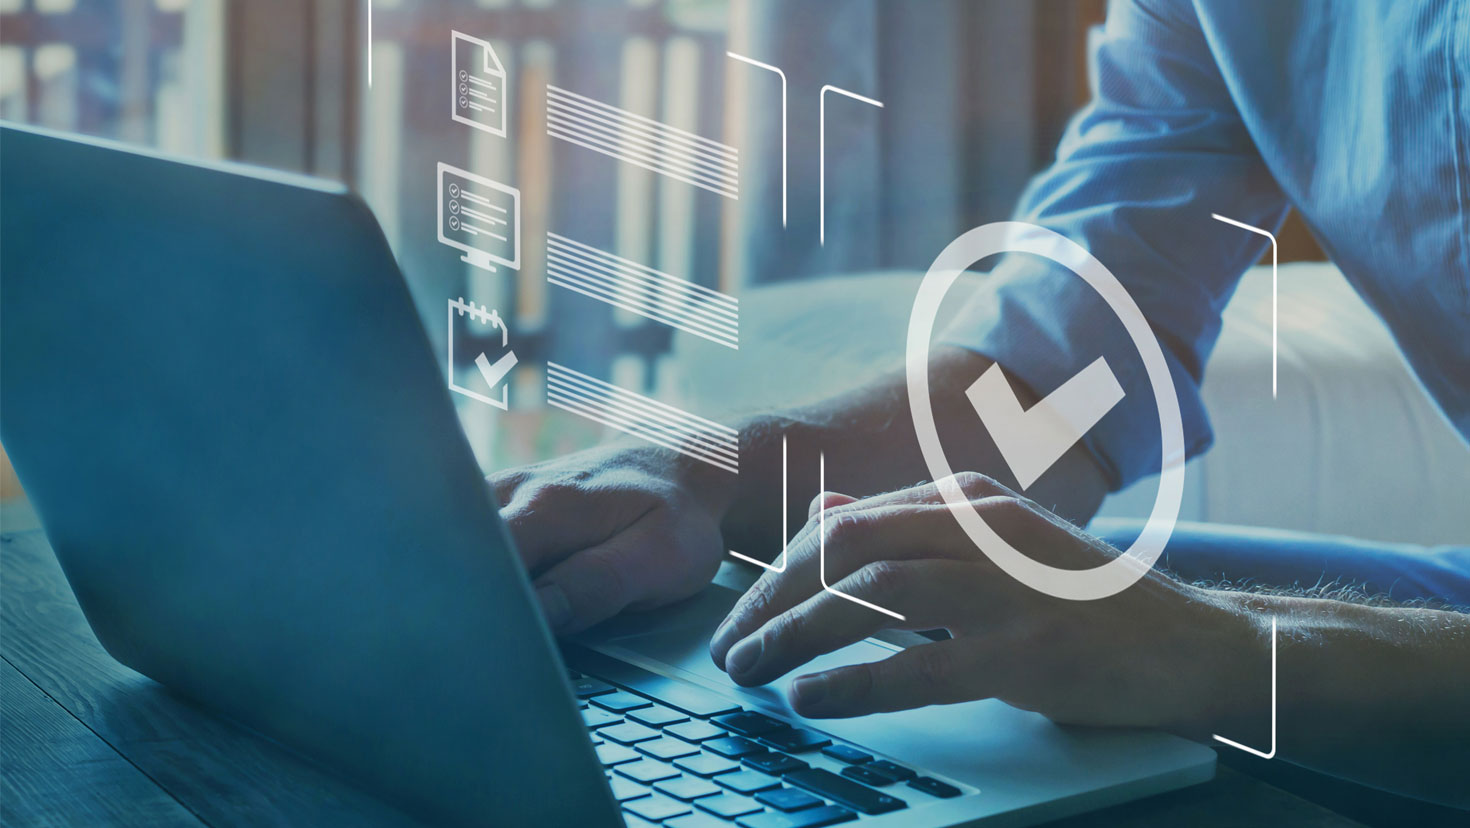 Reduce audit risk and penalties by deploying Vertex exemption certificate outsourcing. We'll collect, validate, store, and manage your certificates. Learn more.